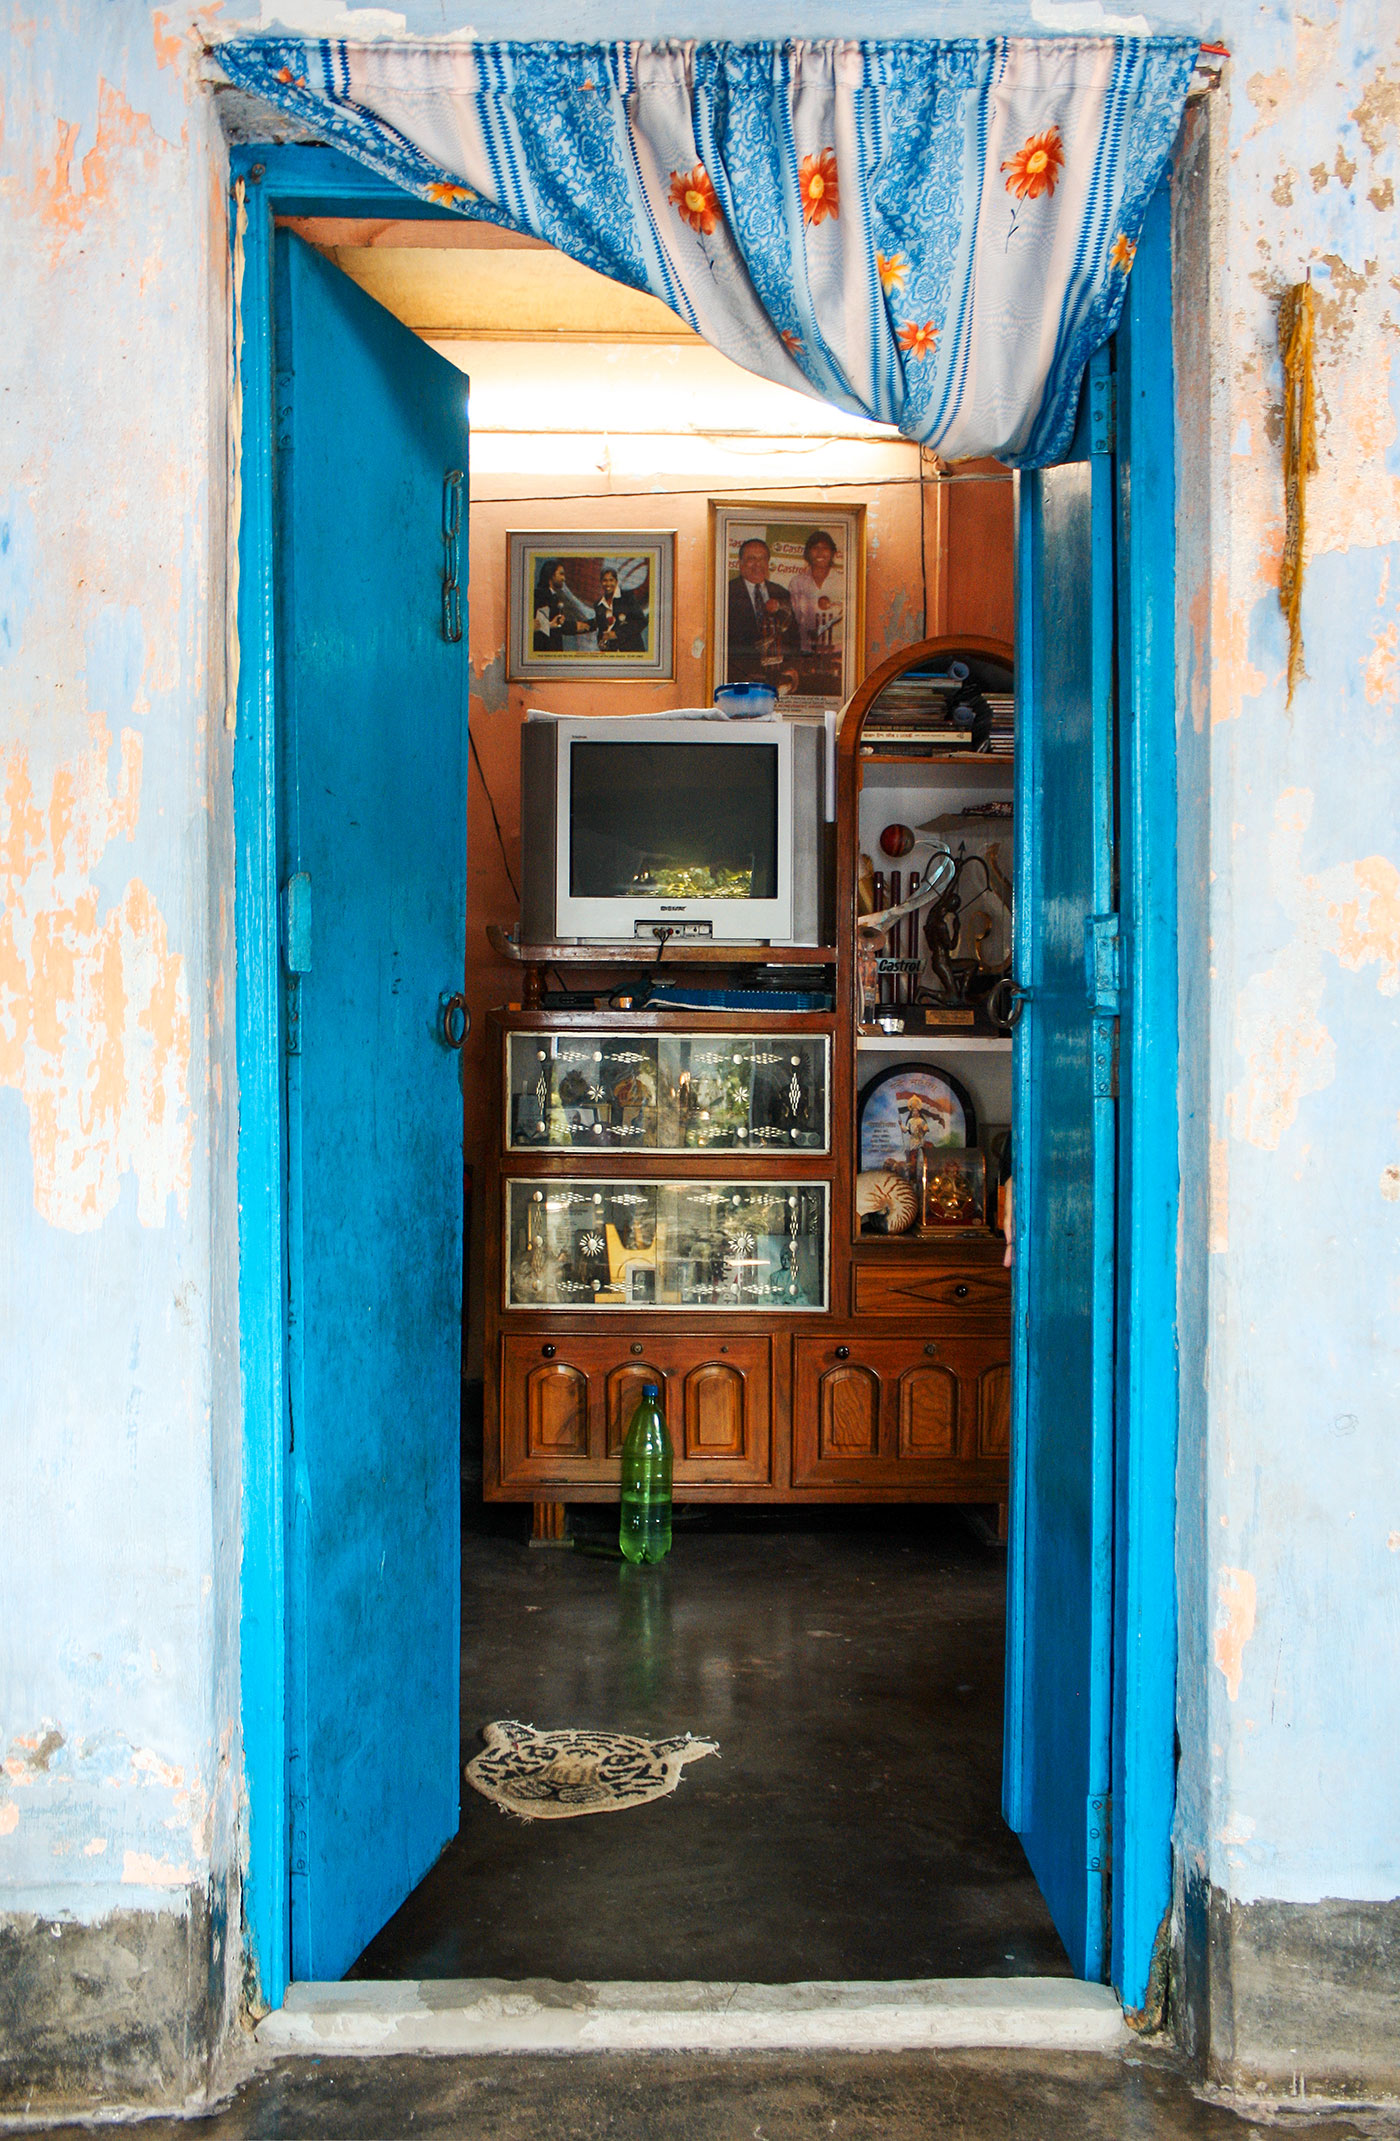 About a girl: the trophy cabinet in Goswami's room